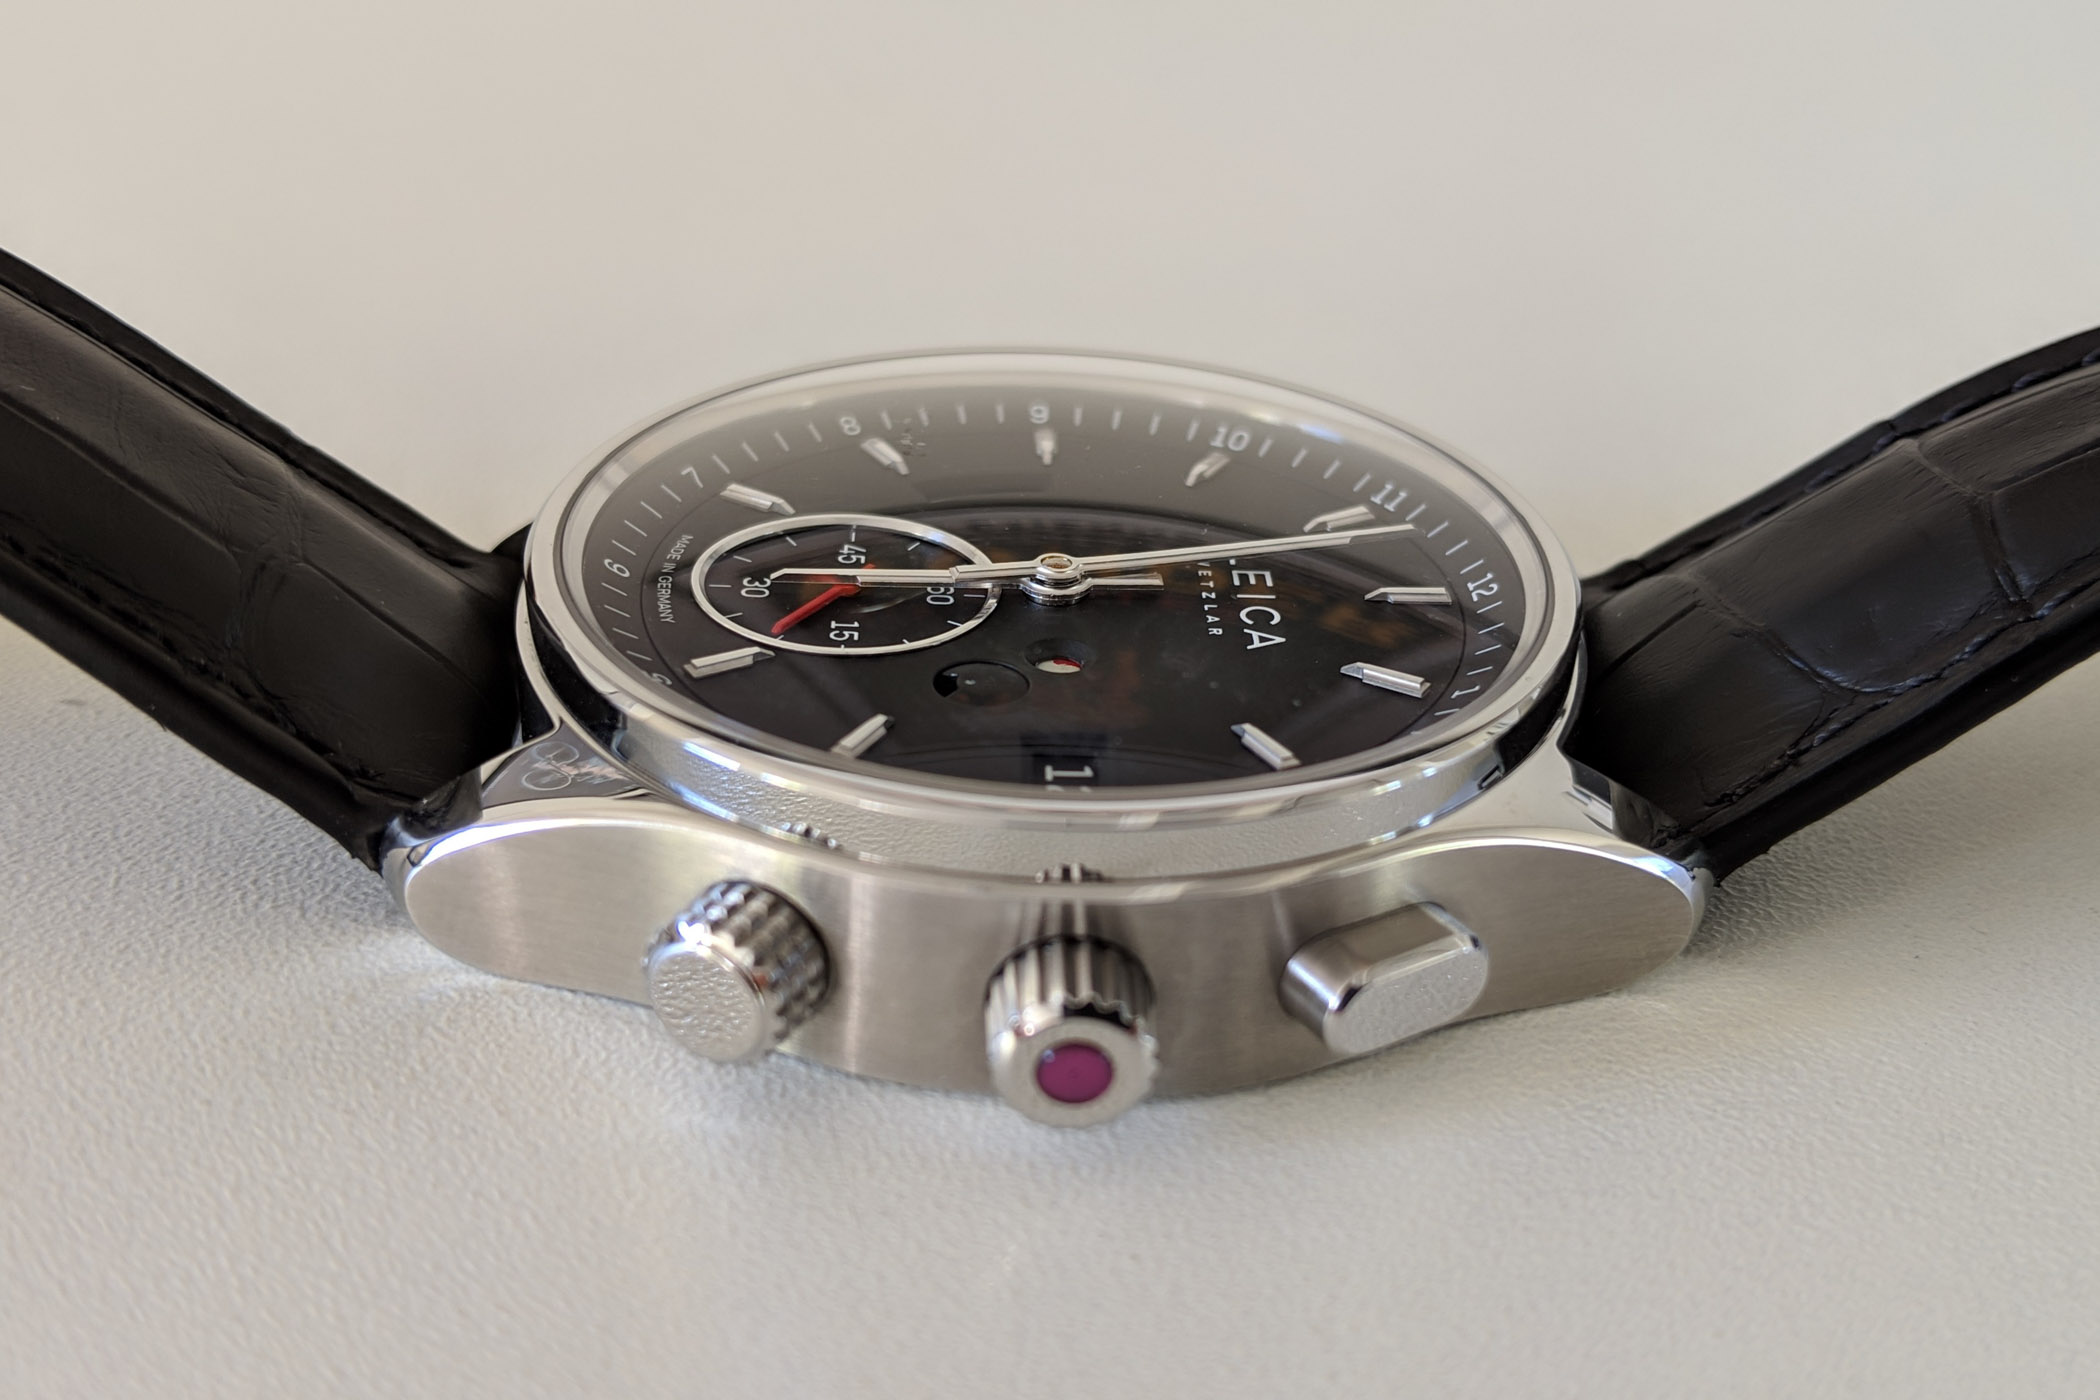 Leica Watch L1 and L2 Review - 3